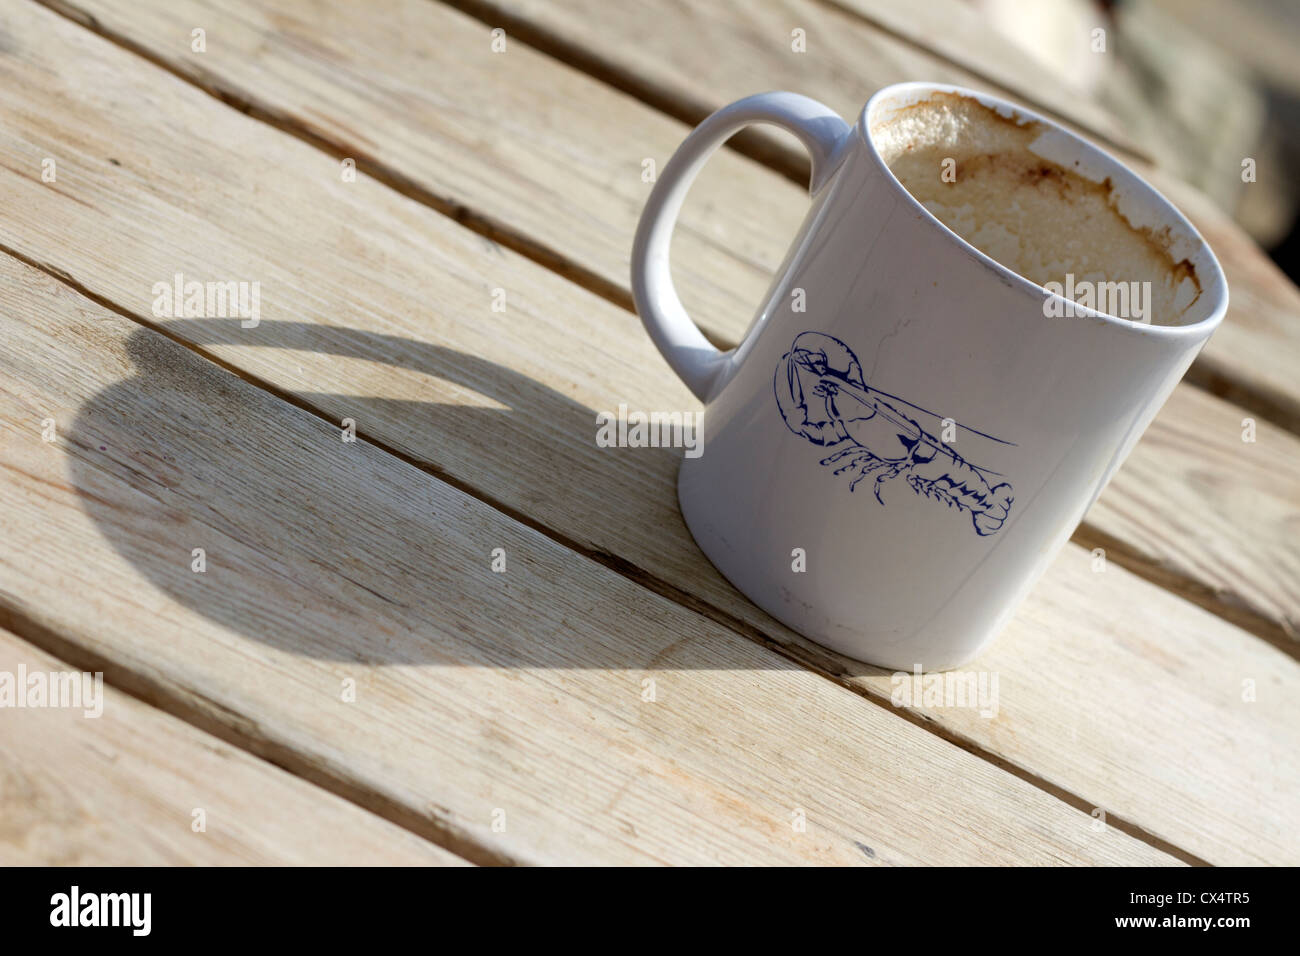 A used mug on a wooden table. - Stock Image